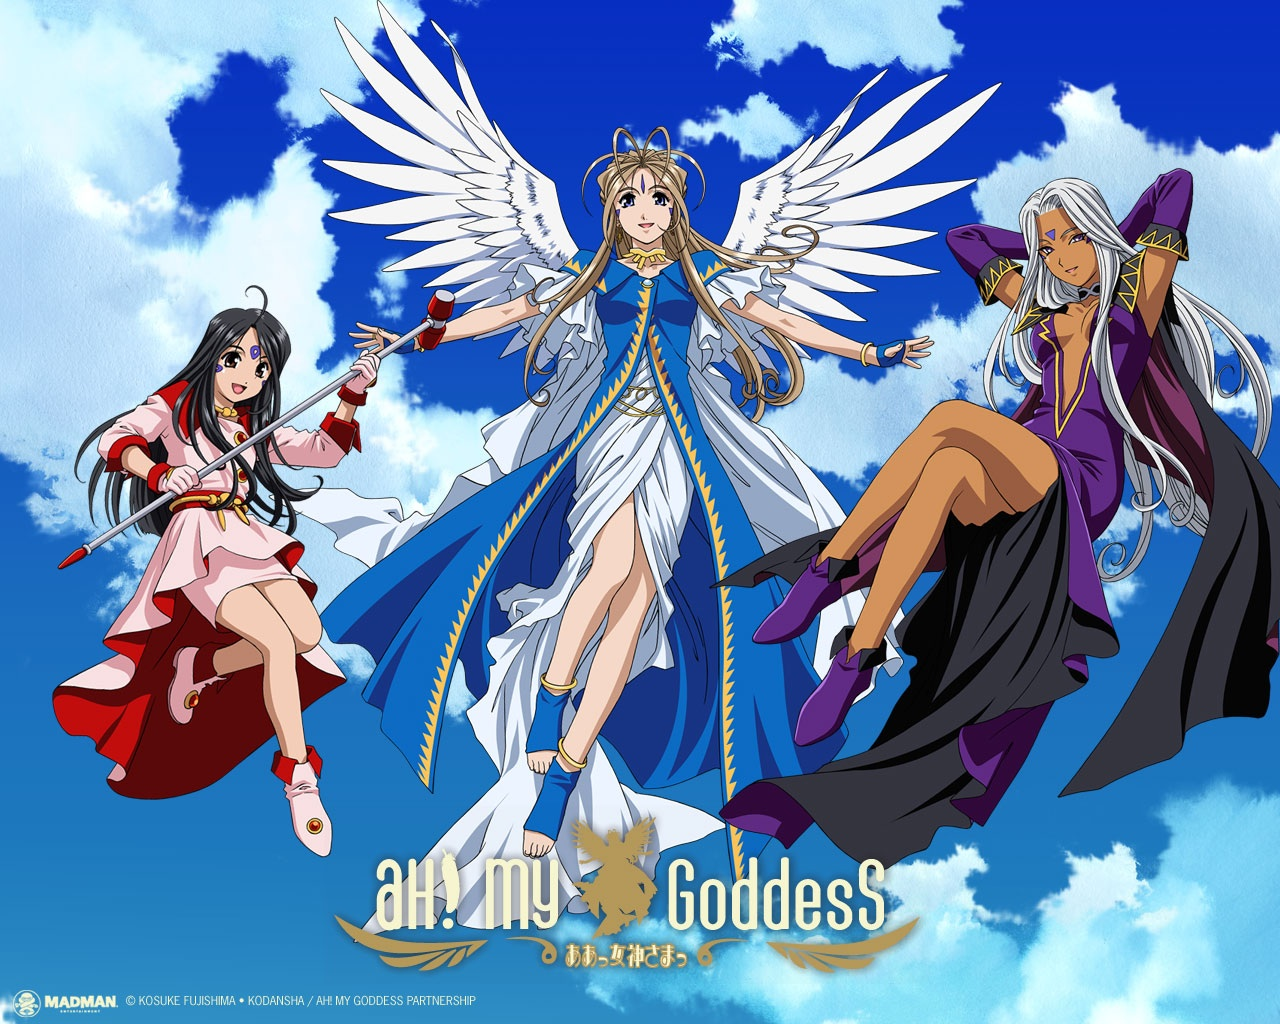 Skuld, Belldandy, and Urd from Ah! My Goddess